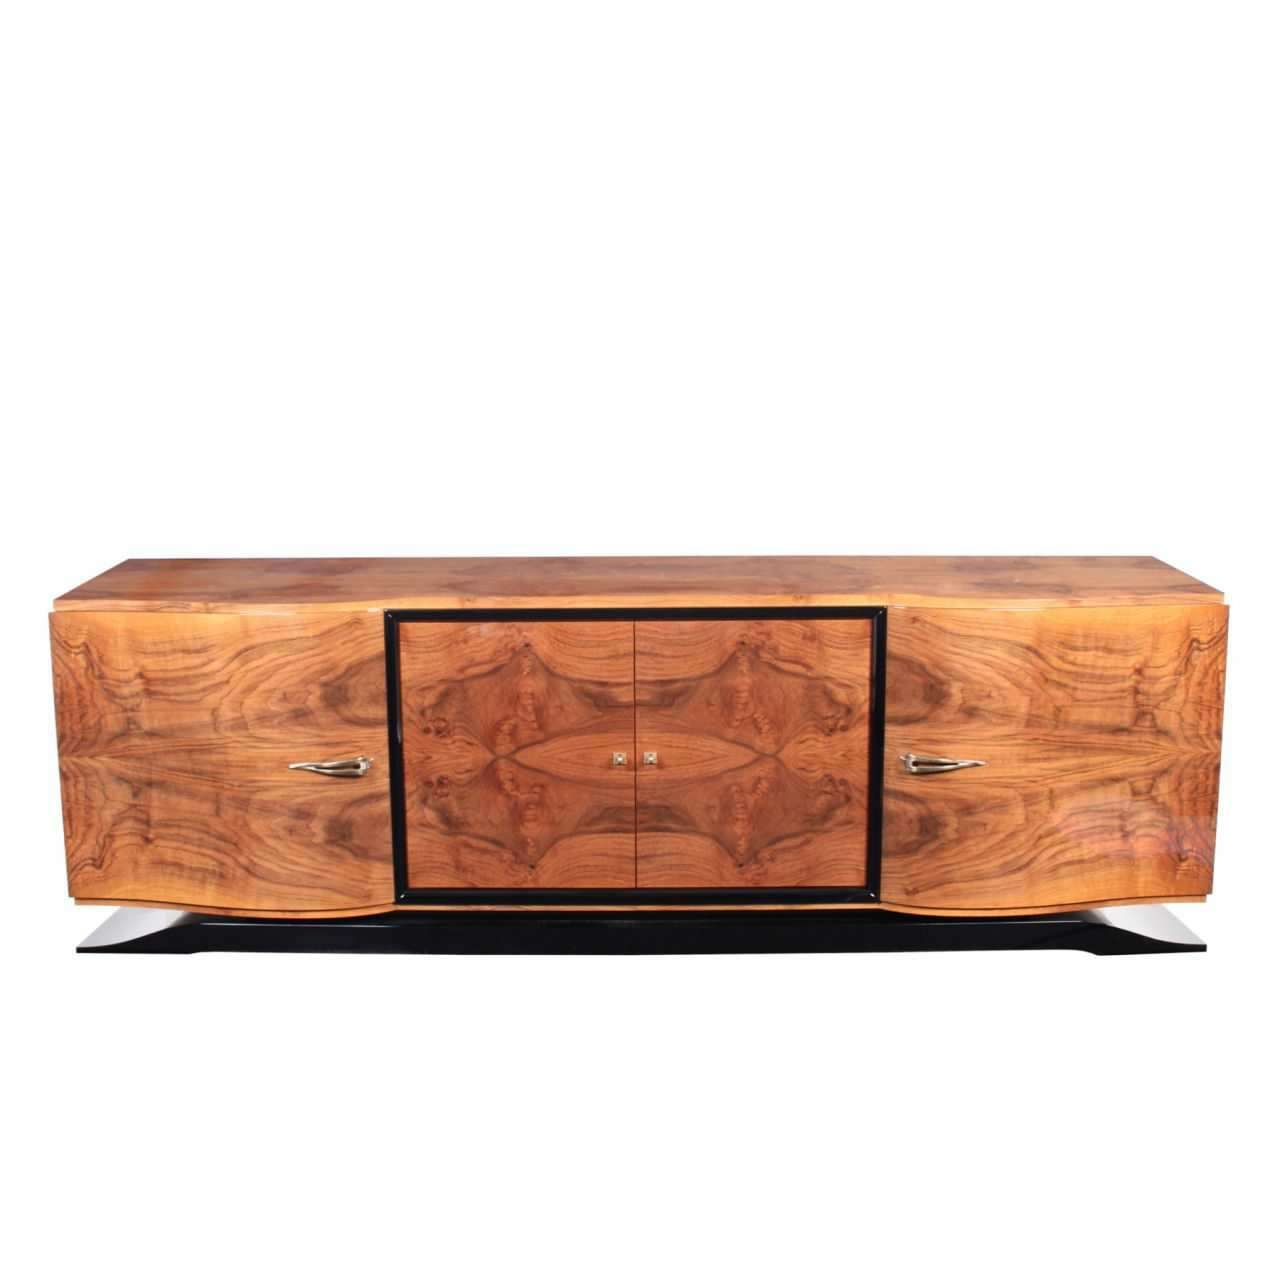 Art Deco Sideboard / Rosewood / Glossy Lacquered Wood – Sb001 Intended For Art Deco Sideboards (View 2 of 20)